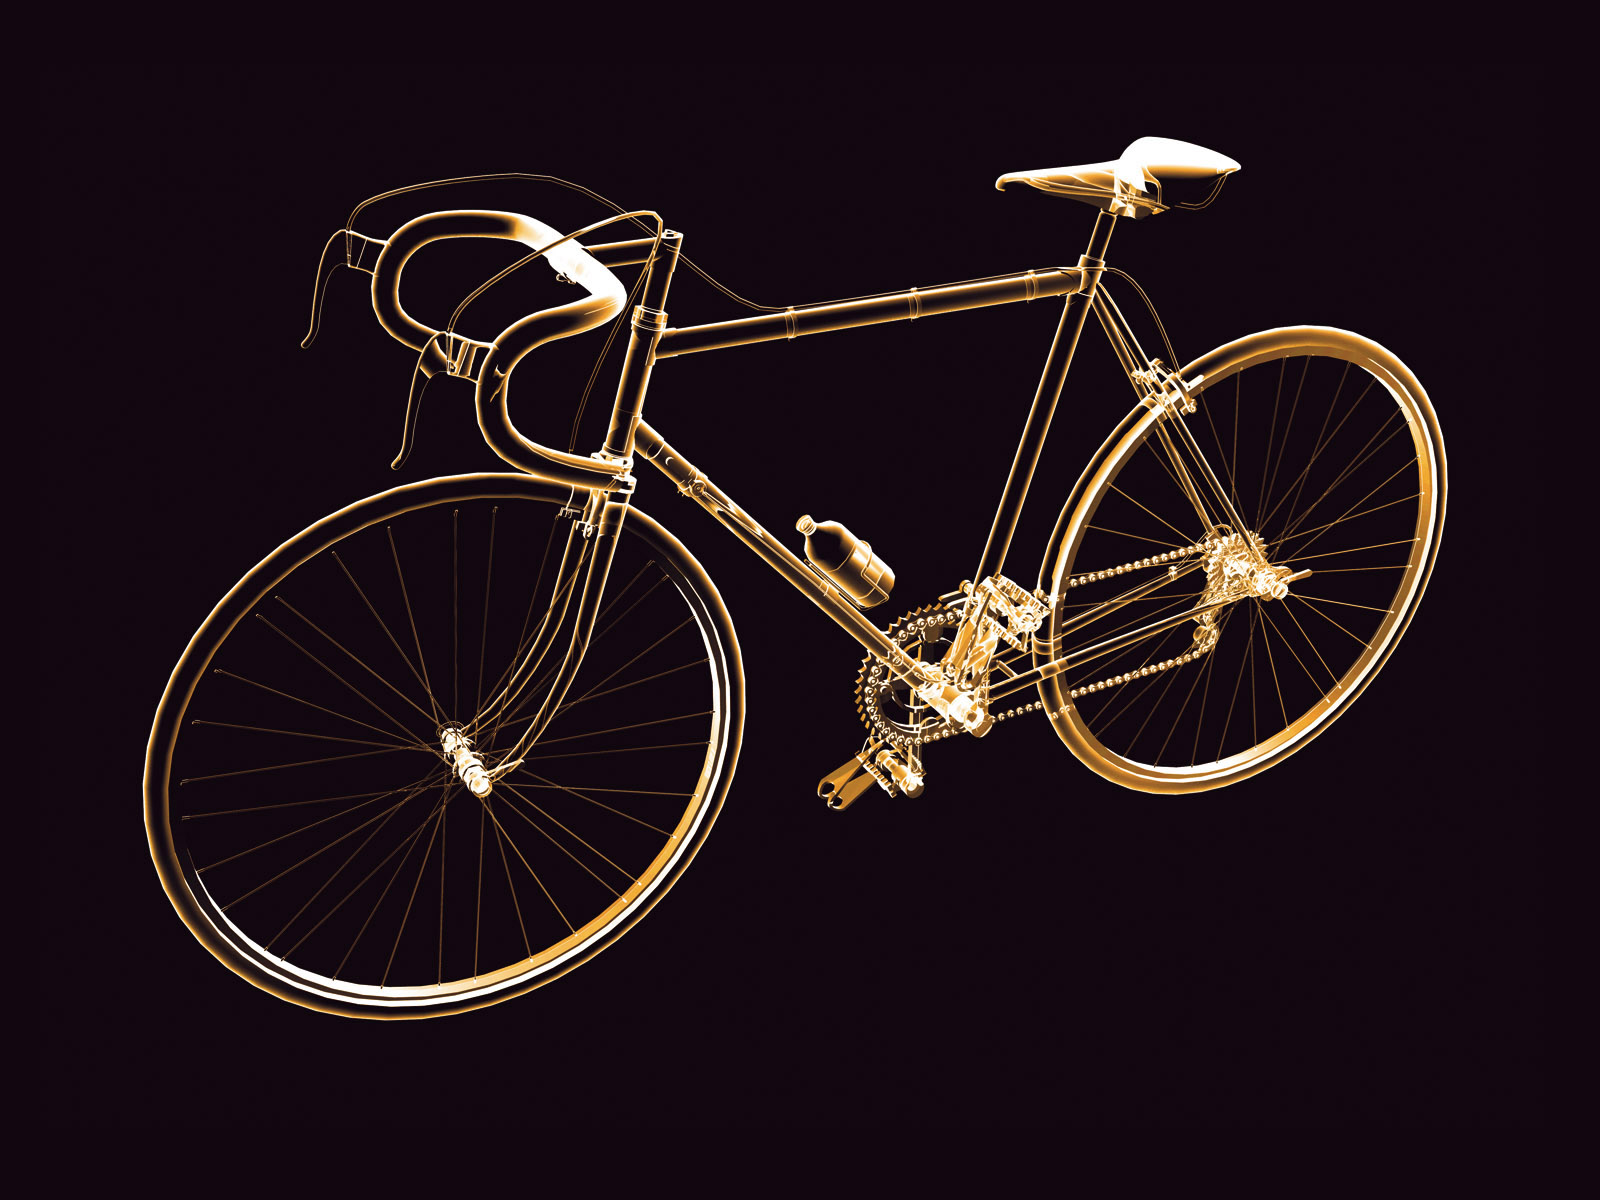 Image Neon Bicycle Wallpapers And Stock Photos